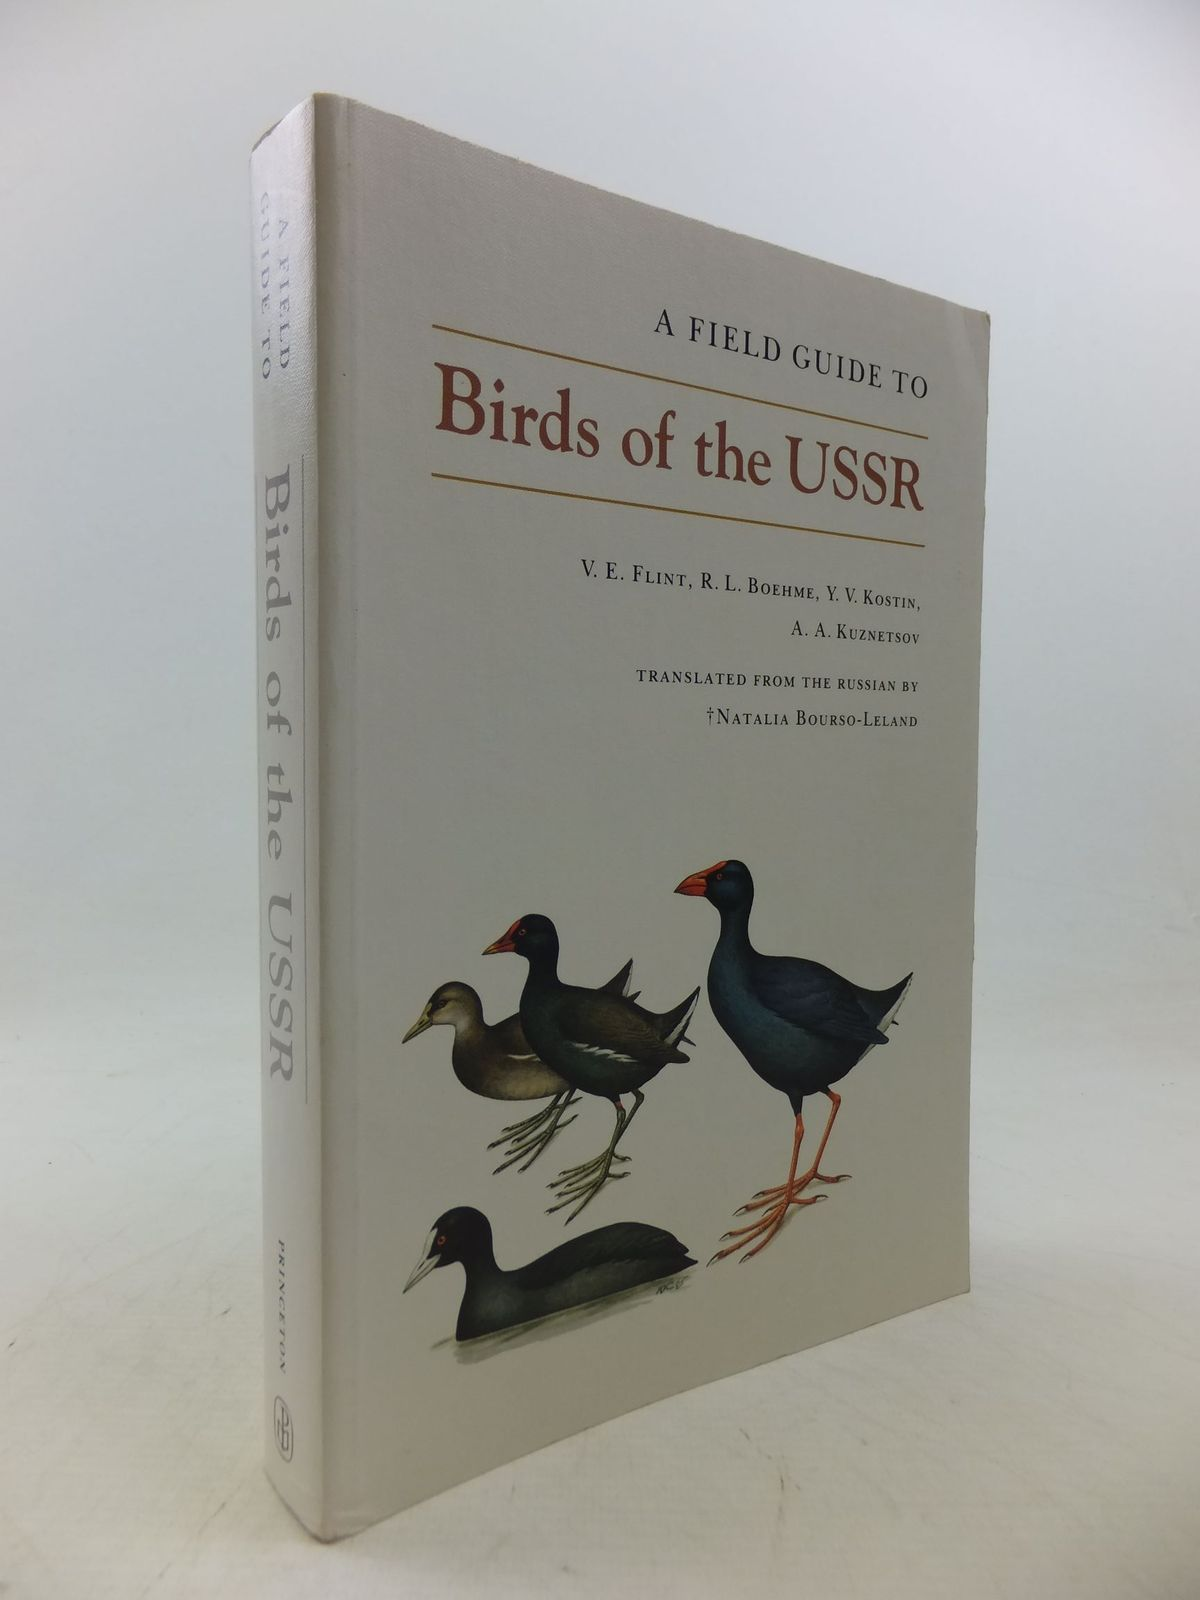 Photo of A FIELD GUIDE TO THE BIRDS OF THE USSR written by Flint, V.E. Boehme, R.L. Kostin, Y.V. Kuznetsov, A.A. illustrated by Kostin, Y.V. published by Princeton University Press (STOCK CODE: 2113734)  for sale by Stella & Rose's Books